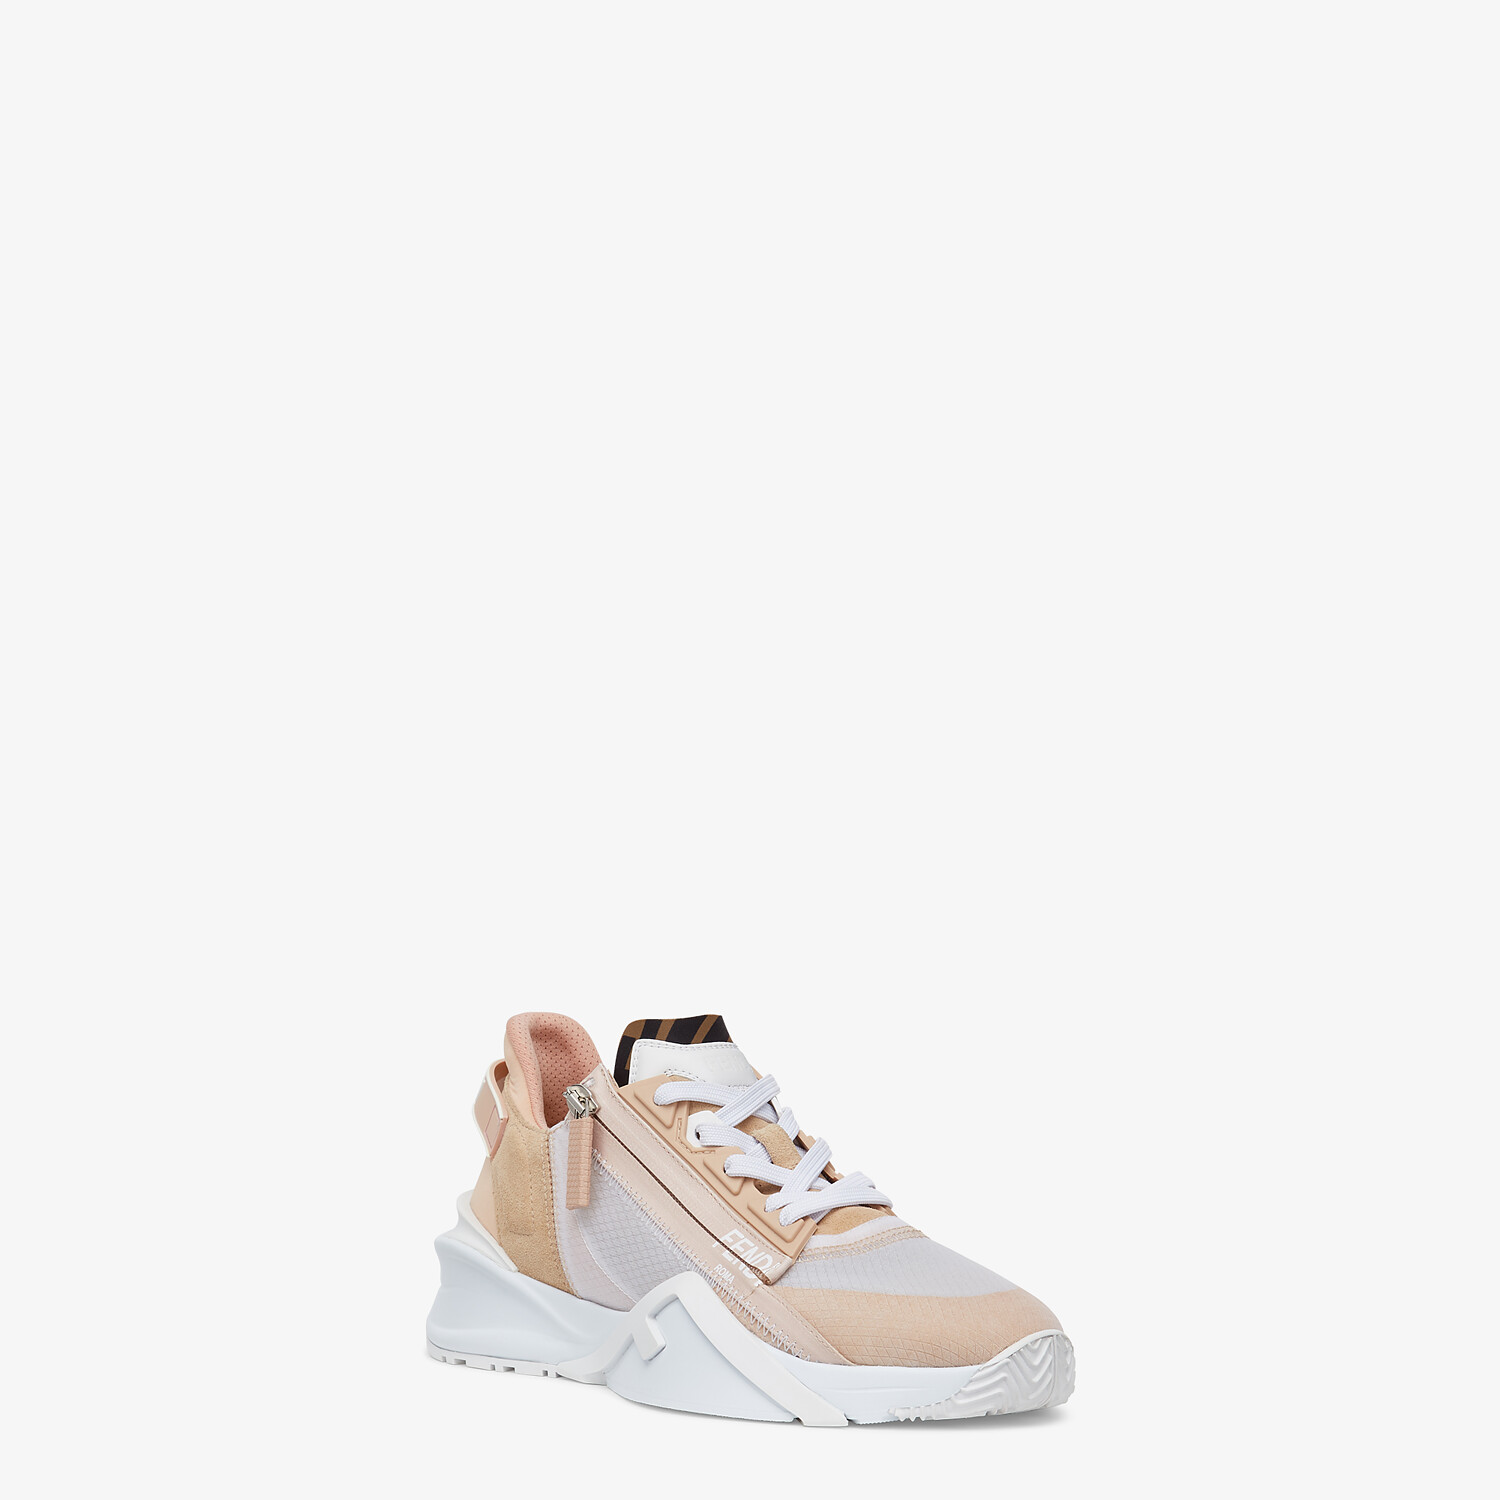 FENDI FENDI FLOW - Low top in pink nylon and suede - view 2 detail